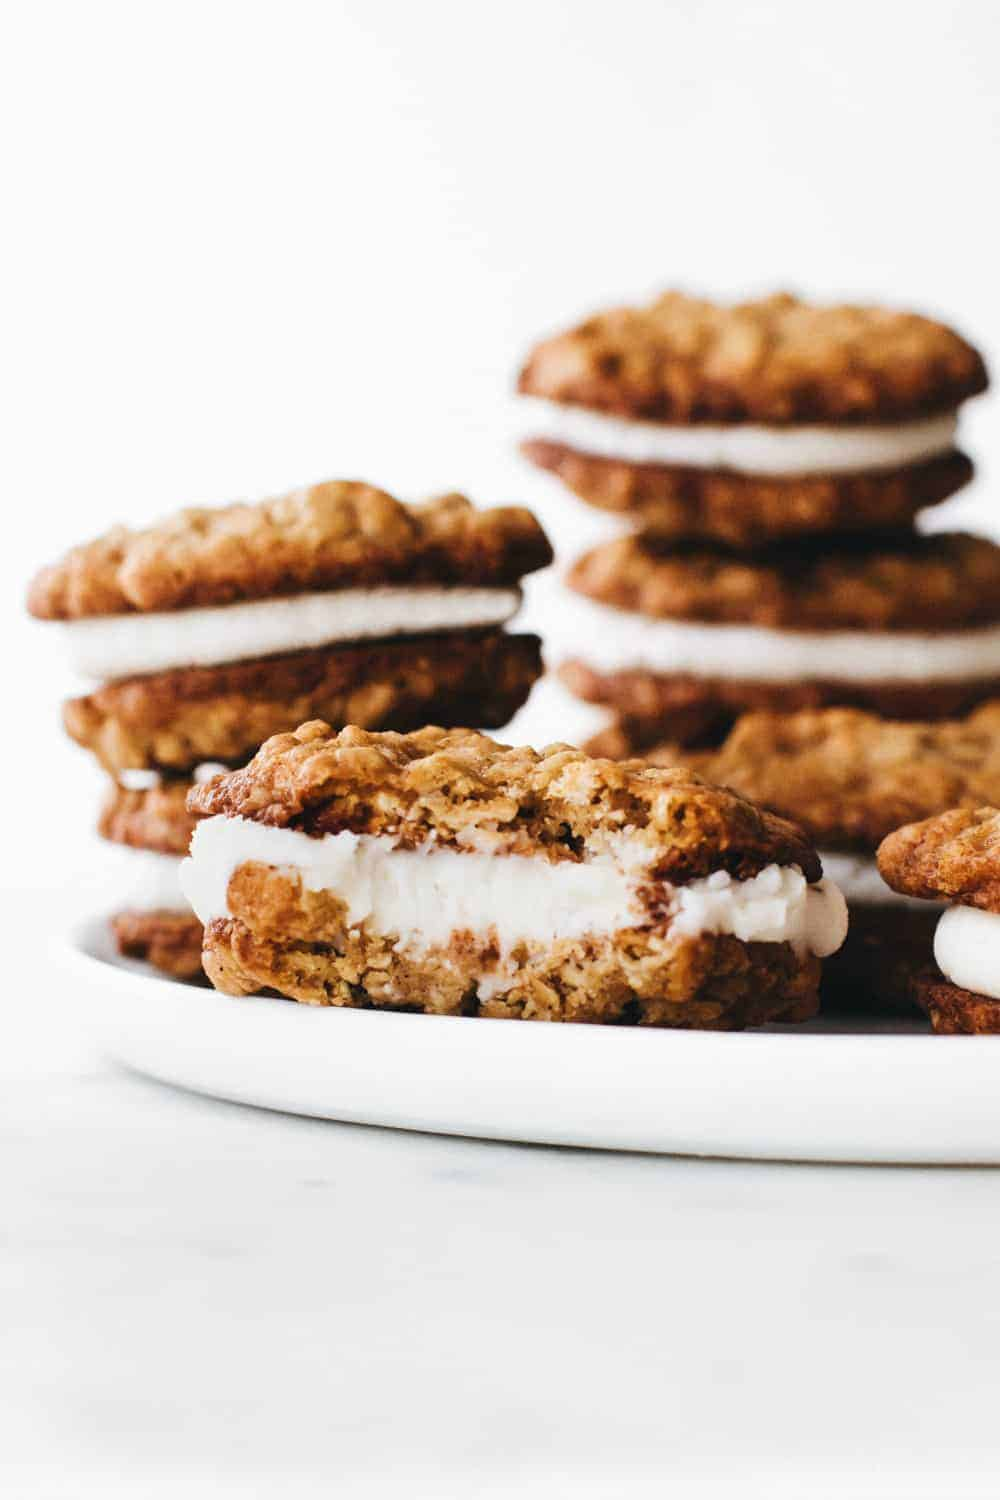 Homemade Oatmeal Cream Pies are delicious and easier to make than you would think!